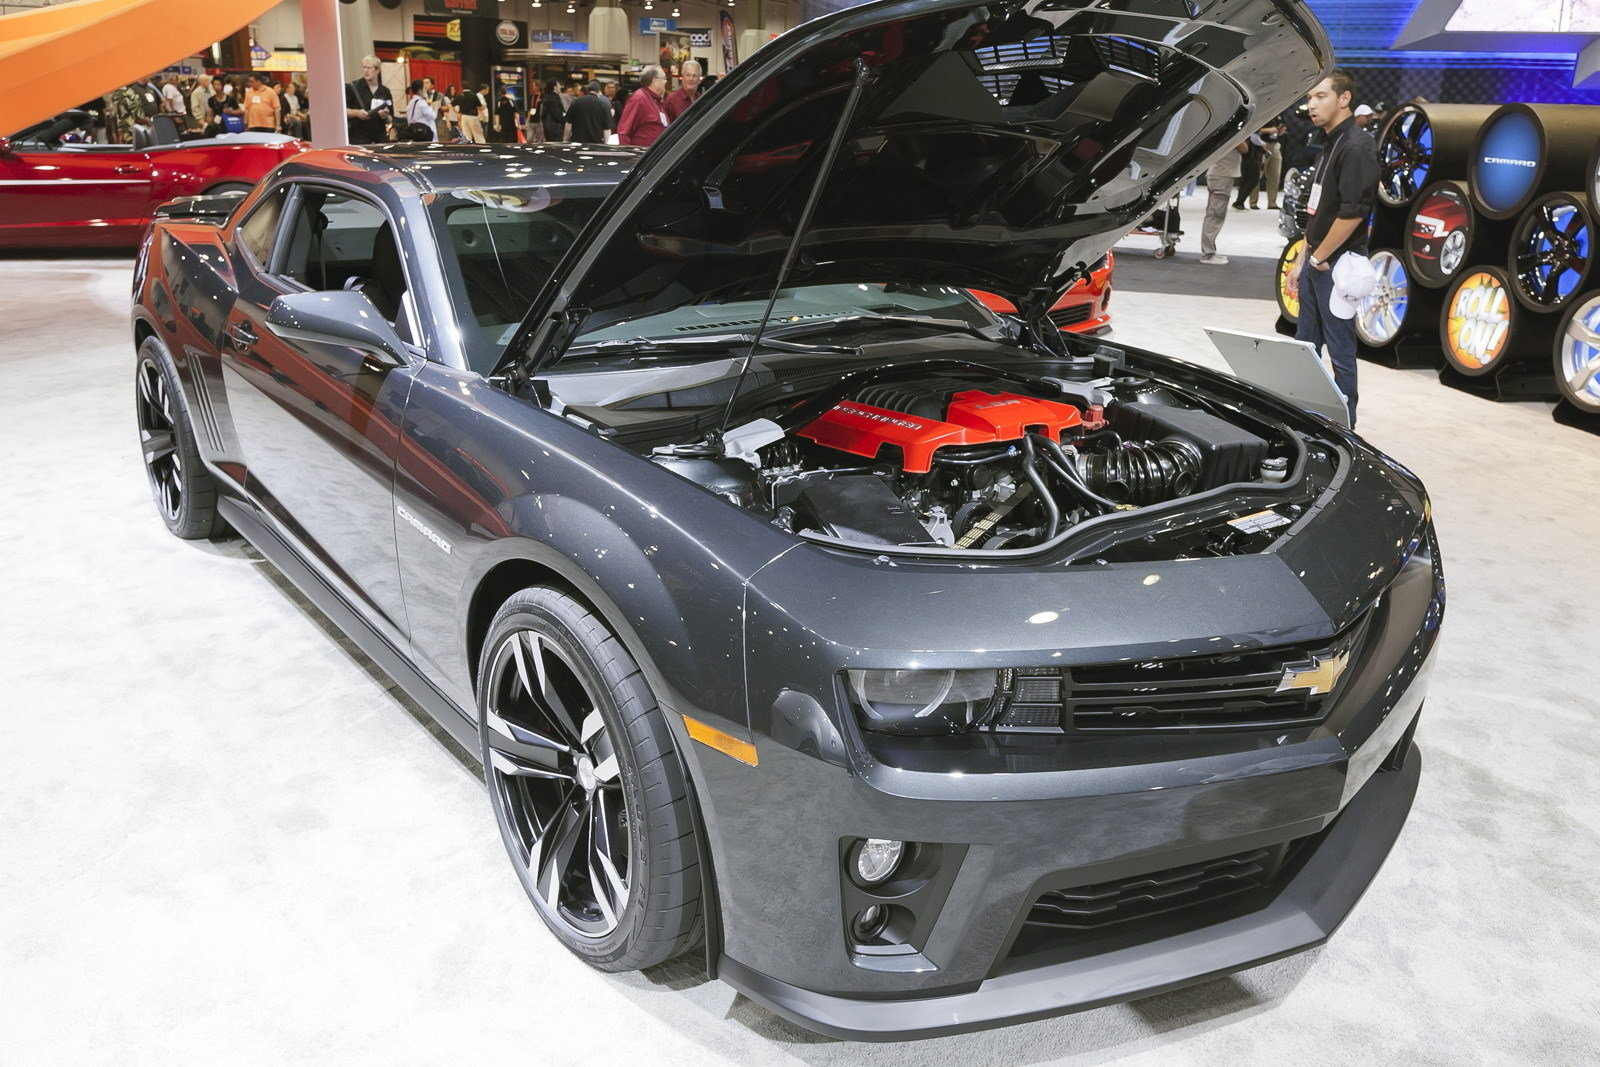 2012 Chevrolet Camaro Zl1 Carbon Edition Review Gallery